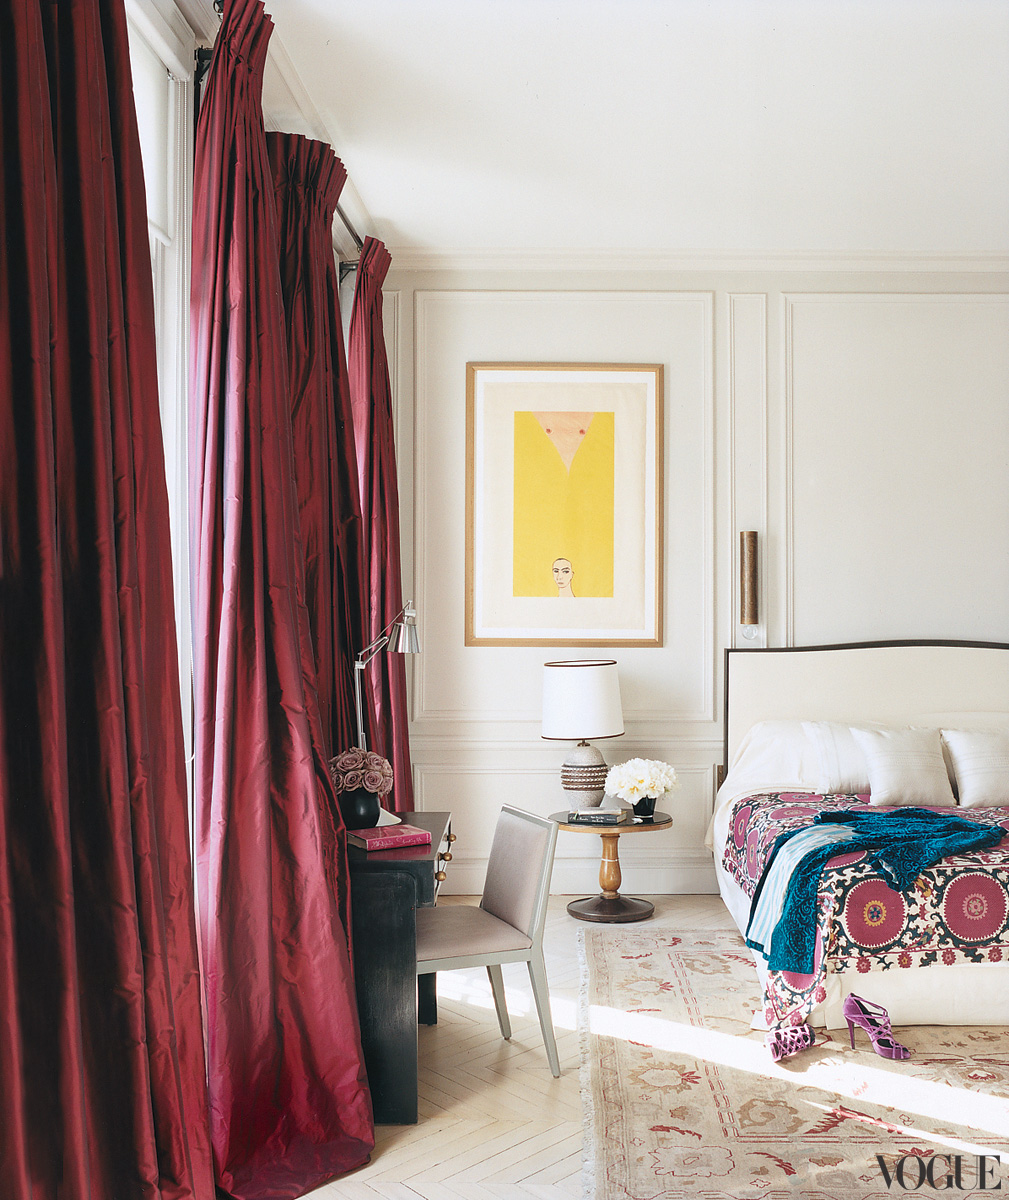 Famous folk at home l wren scott and mick jagger in paris for L bedroom apartments